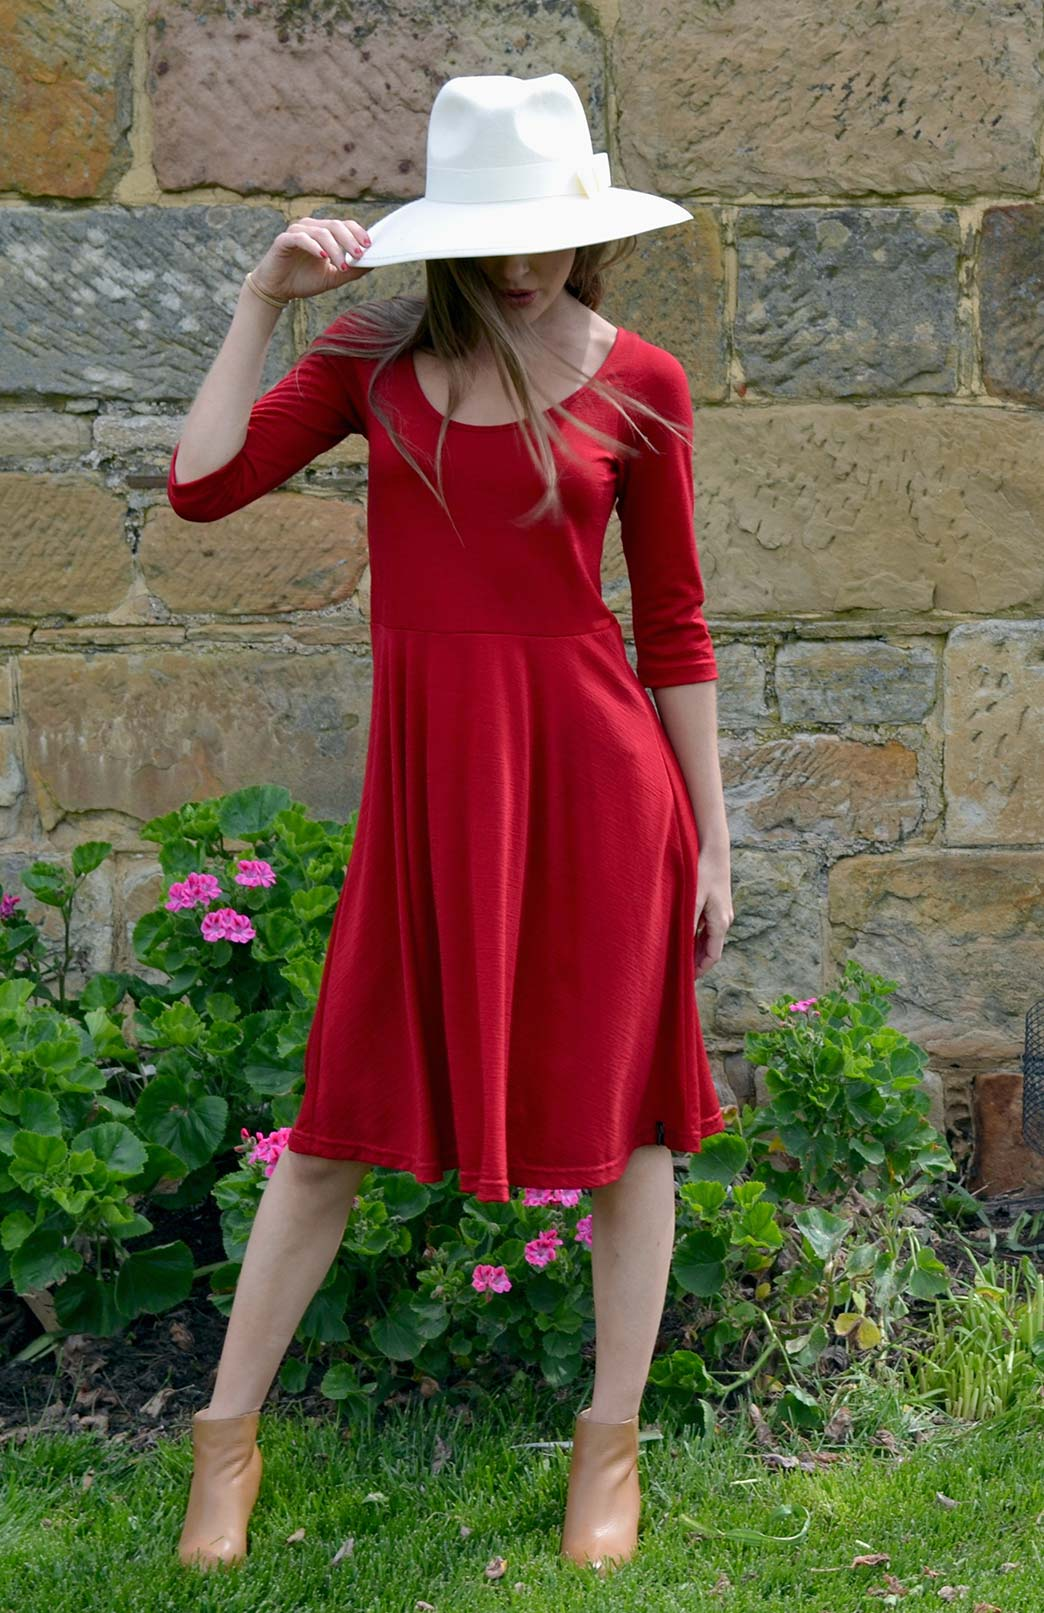 3/4 Jackie Dress - Women's Flame Red Merino Wool 3/4 Sleeve Jackie Dress - Smitten Merino Tasmania Australia